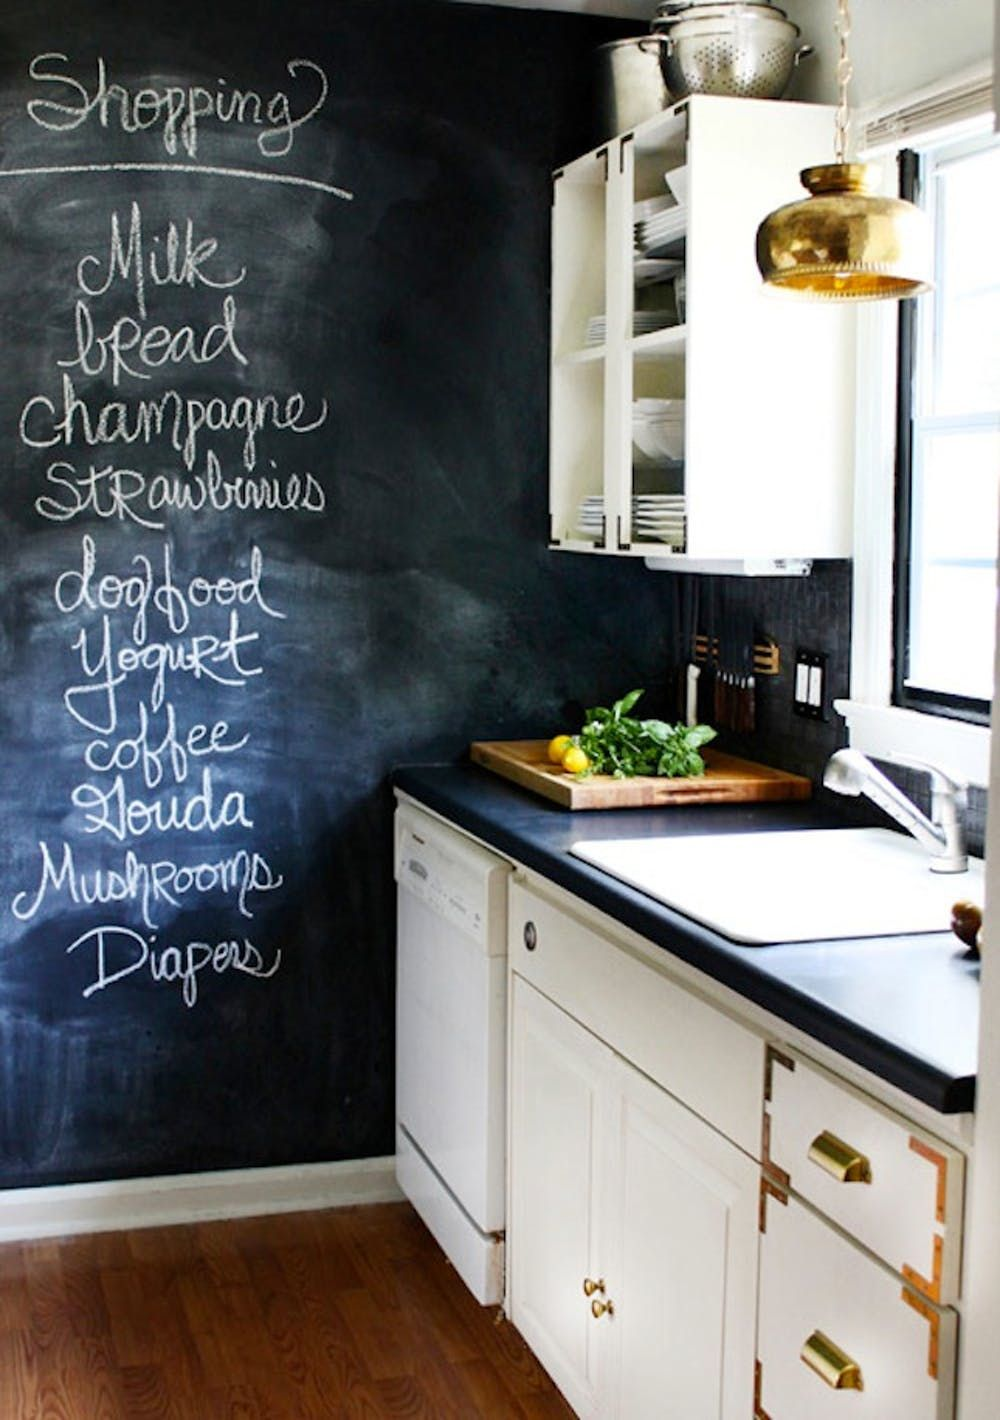 Home Decor Shops Near Me Paint For Kitchen Walls Kitchen Cabinets Chalkboard Wall Kitchen